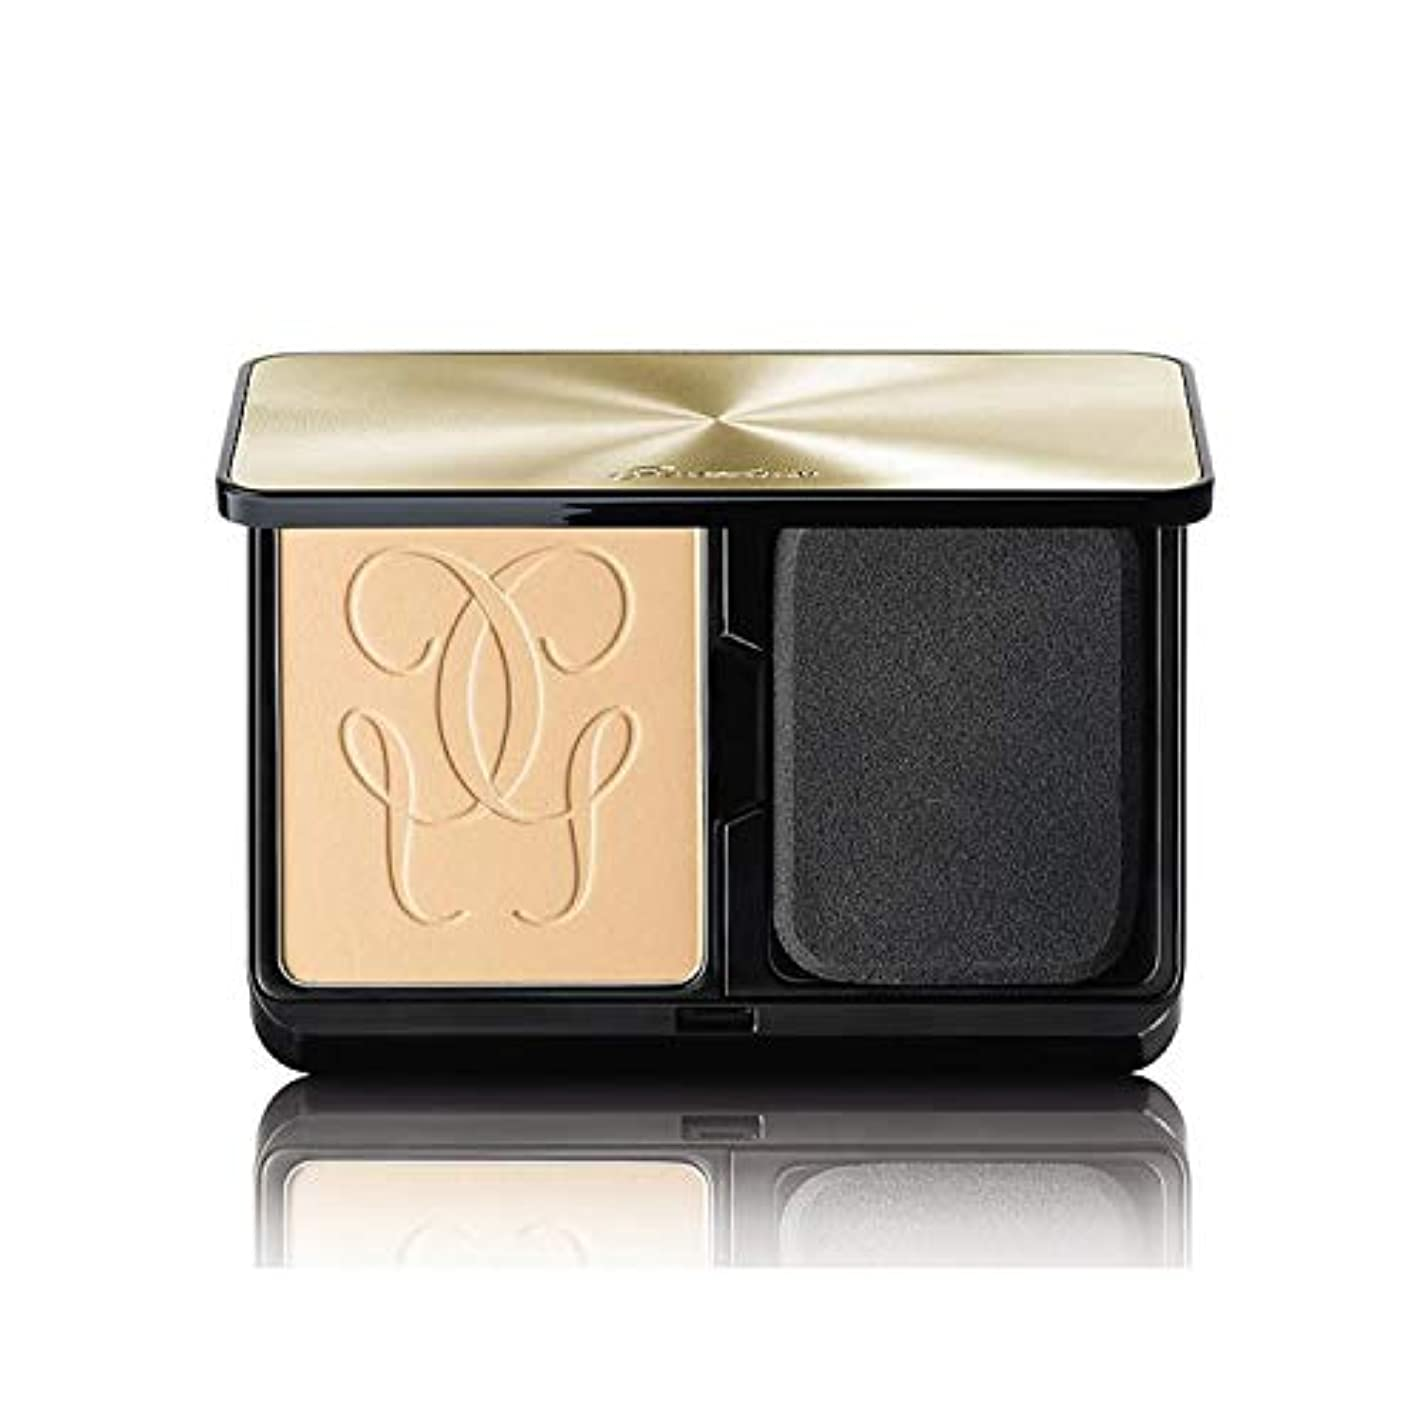 観察する等評判ゲラン Lingerie De Peau Mat Alive Buildable Compact Powder Foundation SPF 15 - # 01N Very Light 8.5g/0.29oz並行輸入品